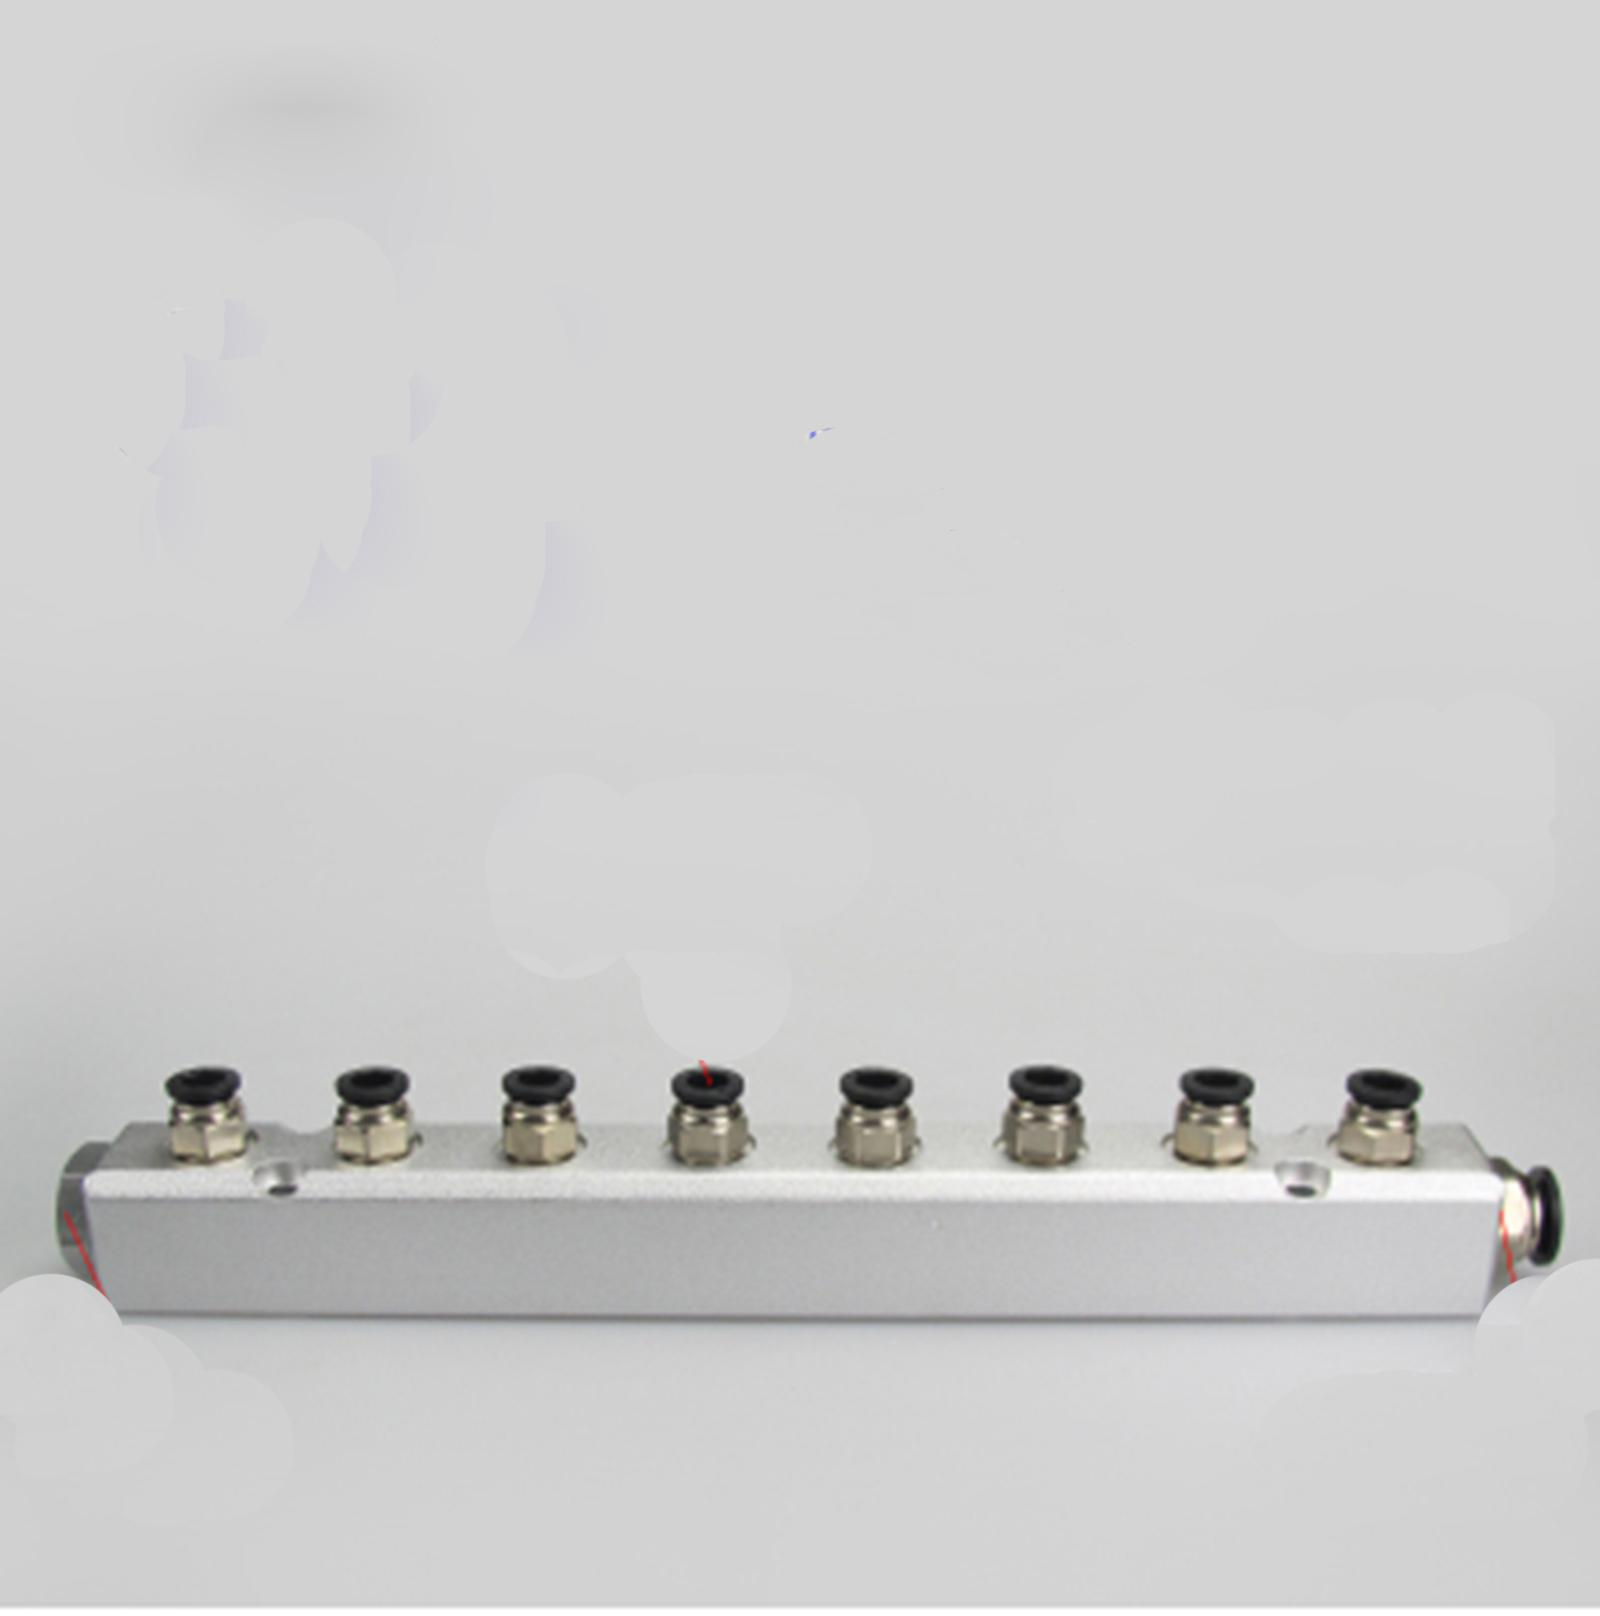 30x30mm G1/4 Out G1/2 In 8 Way Pneumatic Fitting Air Manifold Block Splitter расходомер barry 4 g1 2 2 8l min